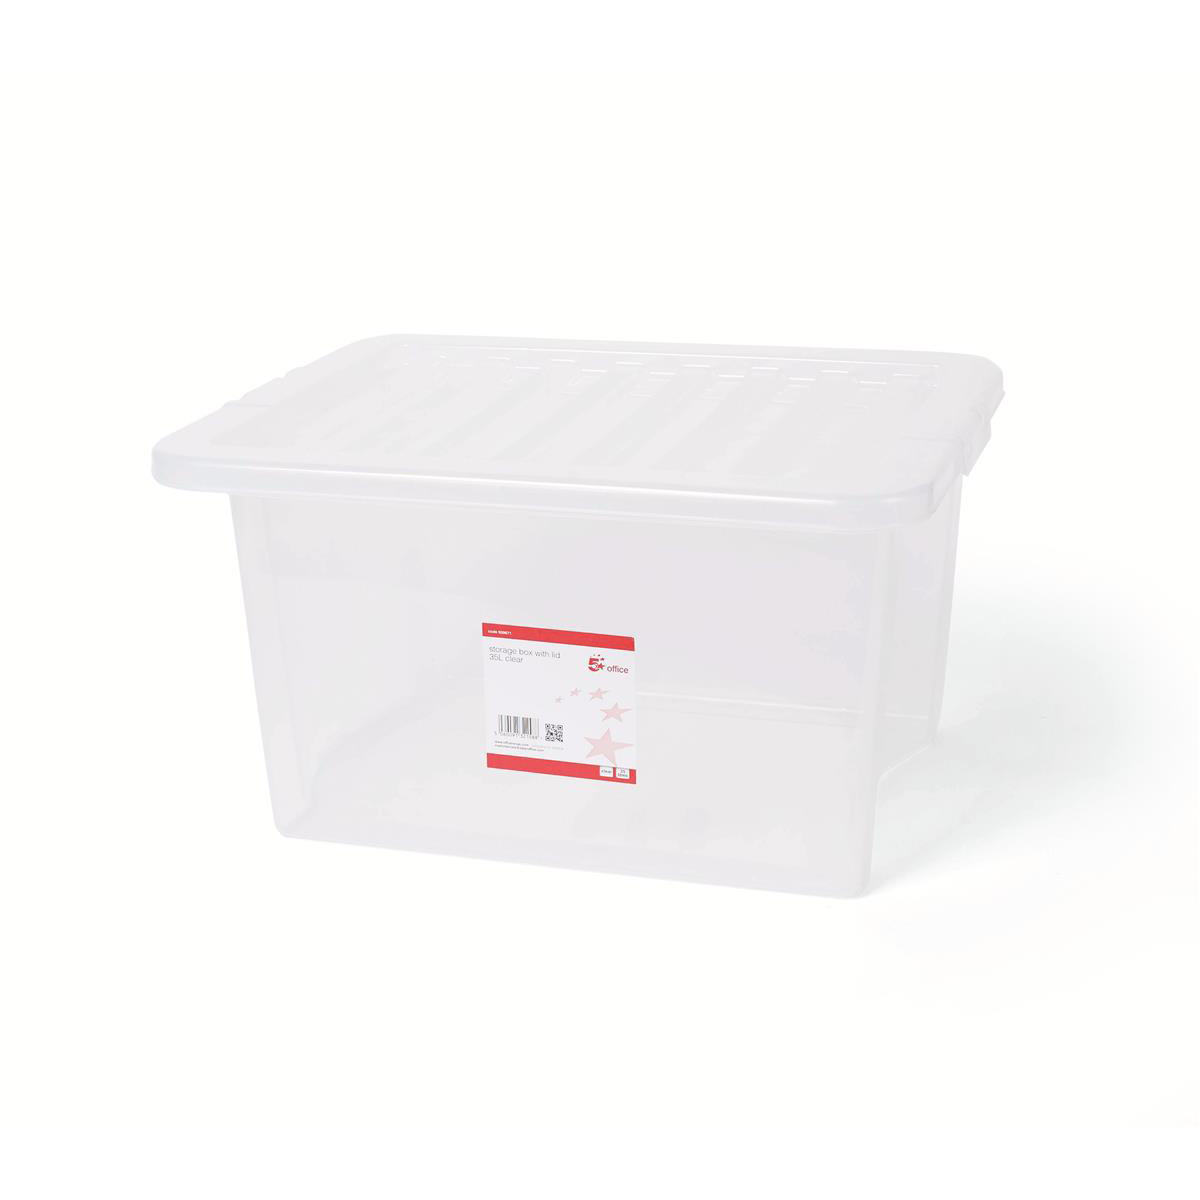 5 Star Storage Box Plastic with Lid Stackable 35 Litre Clear Code 12455